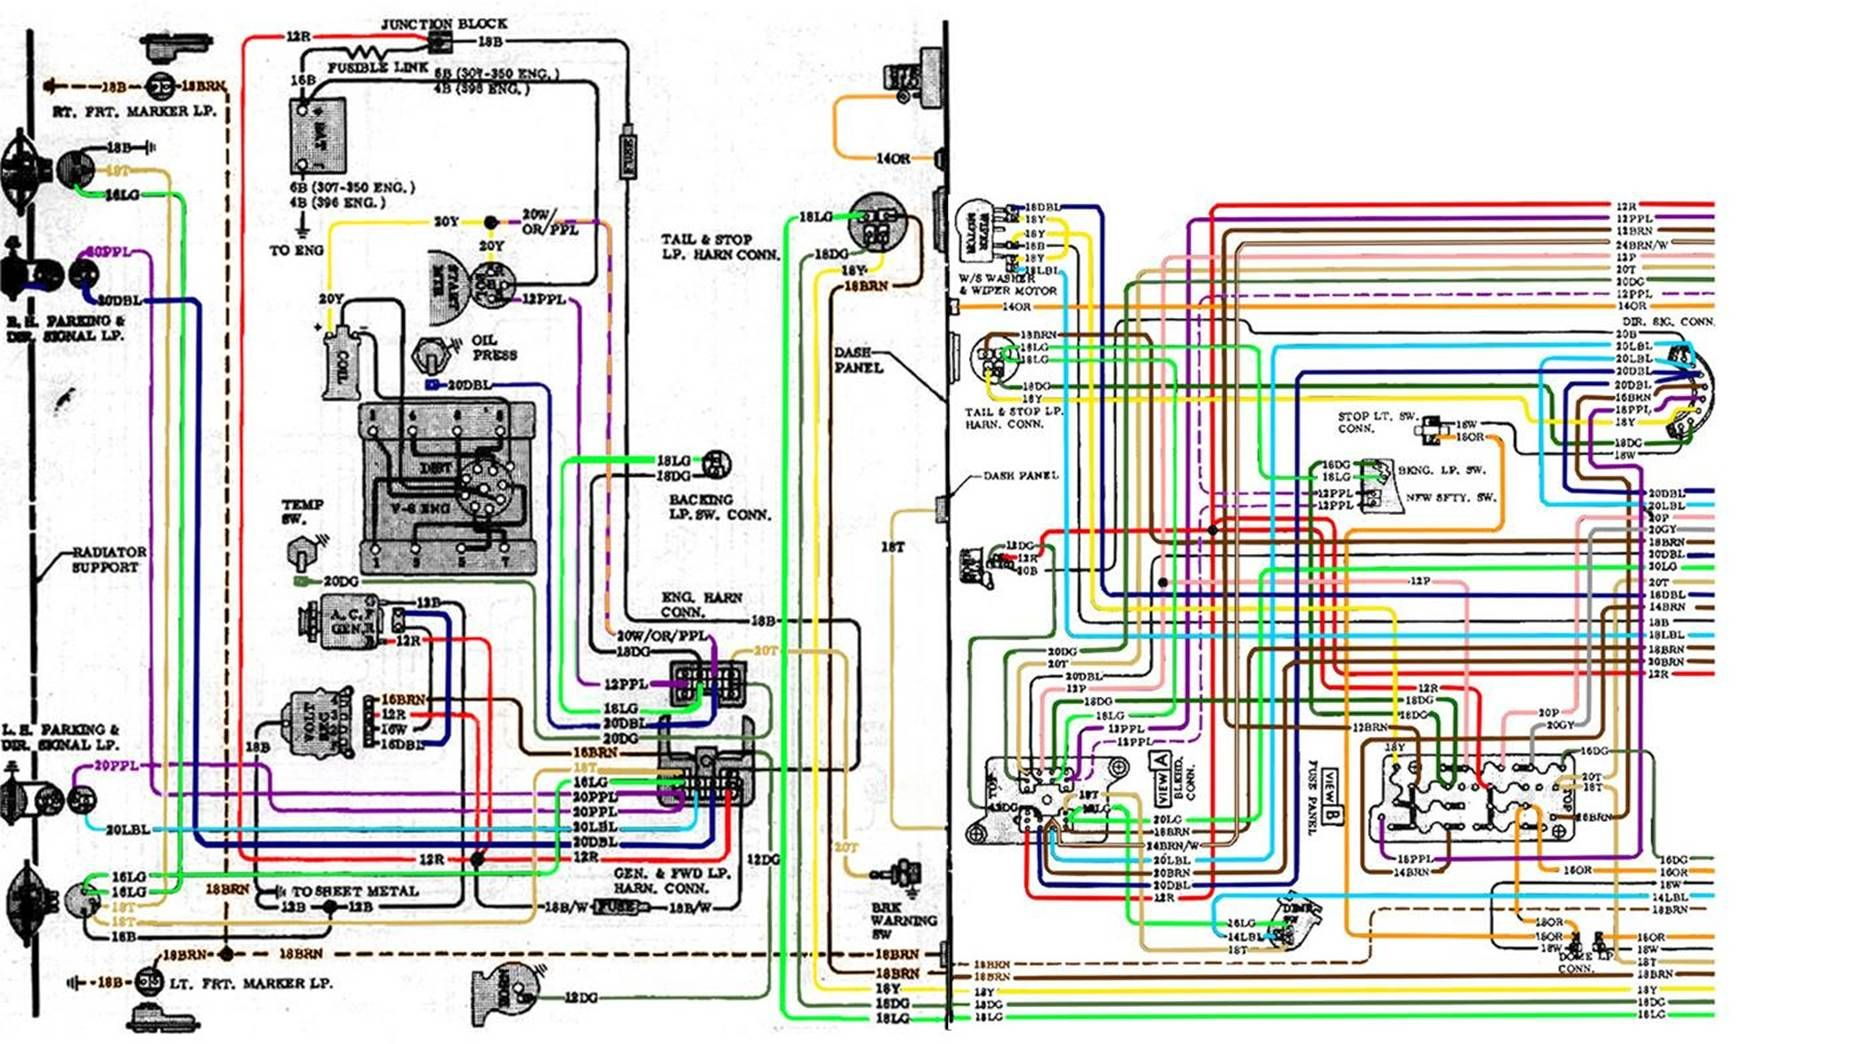 67 72 Chevy Wiring Diagram 72 Chevy Truck Chevy S10 Chevy Trucks